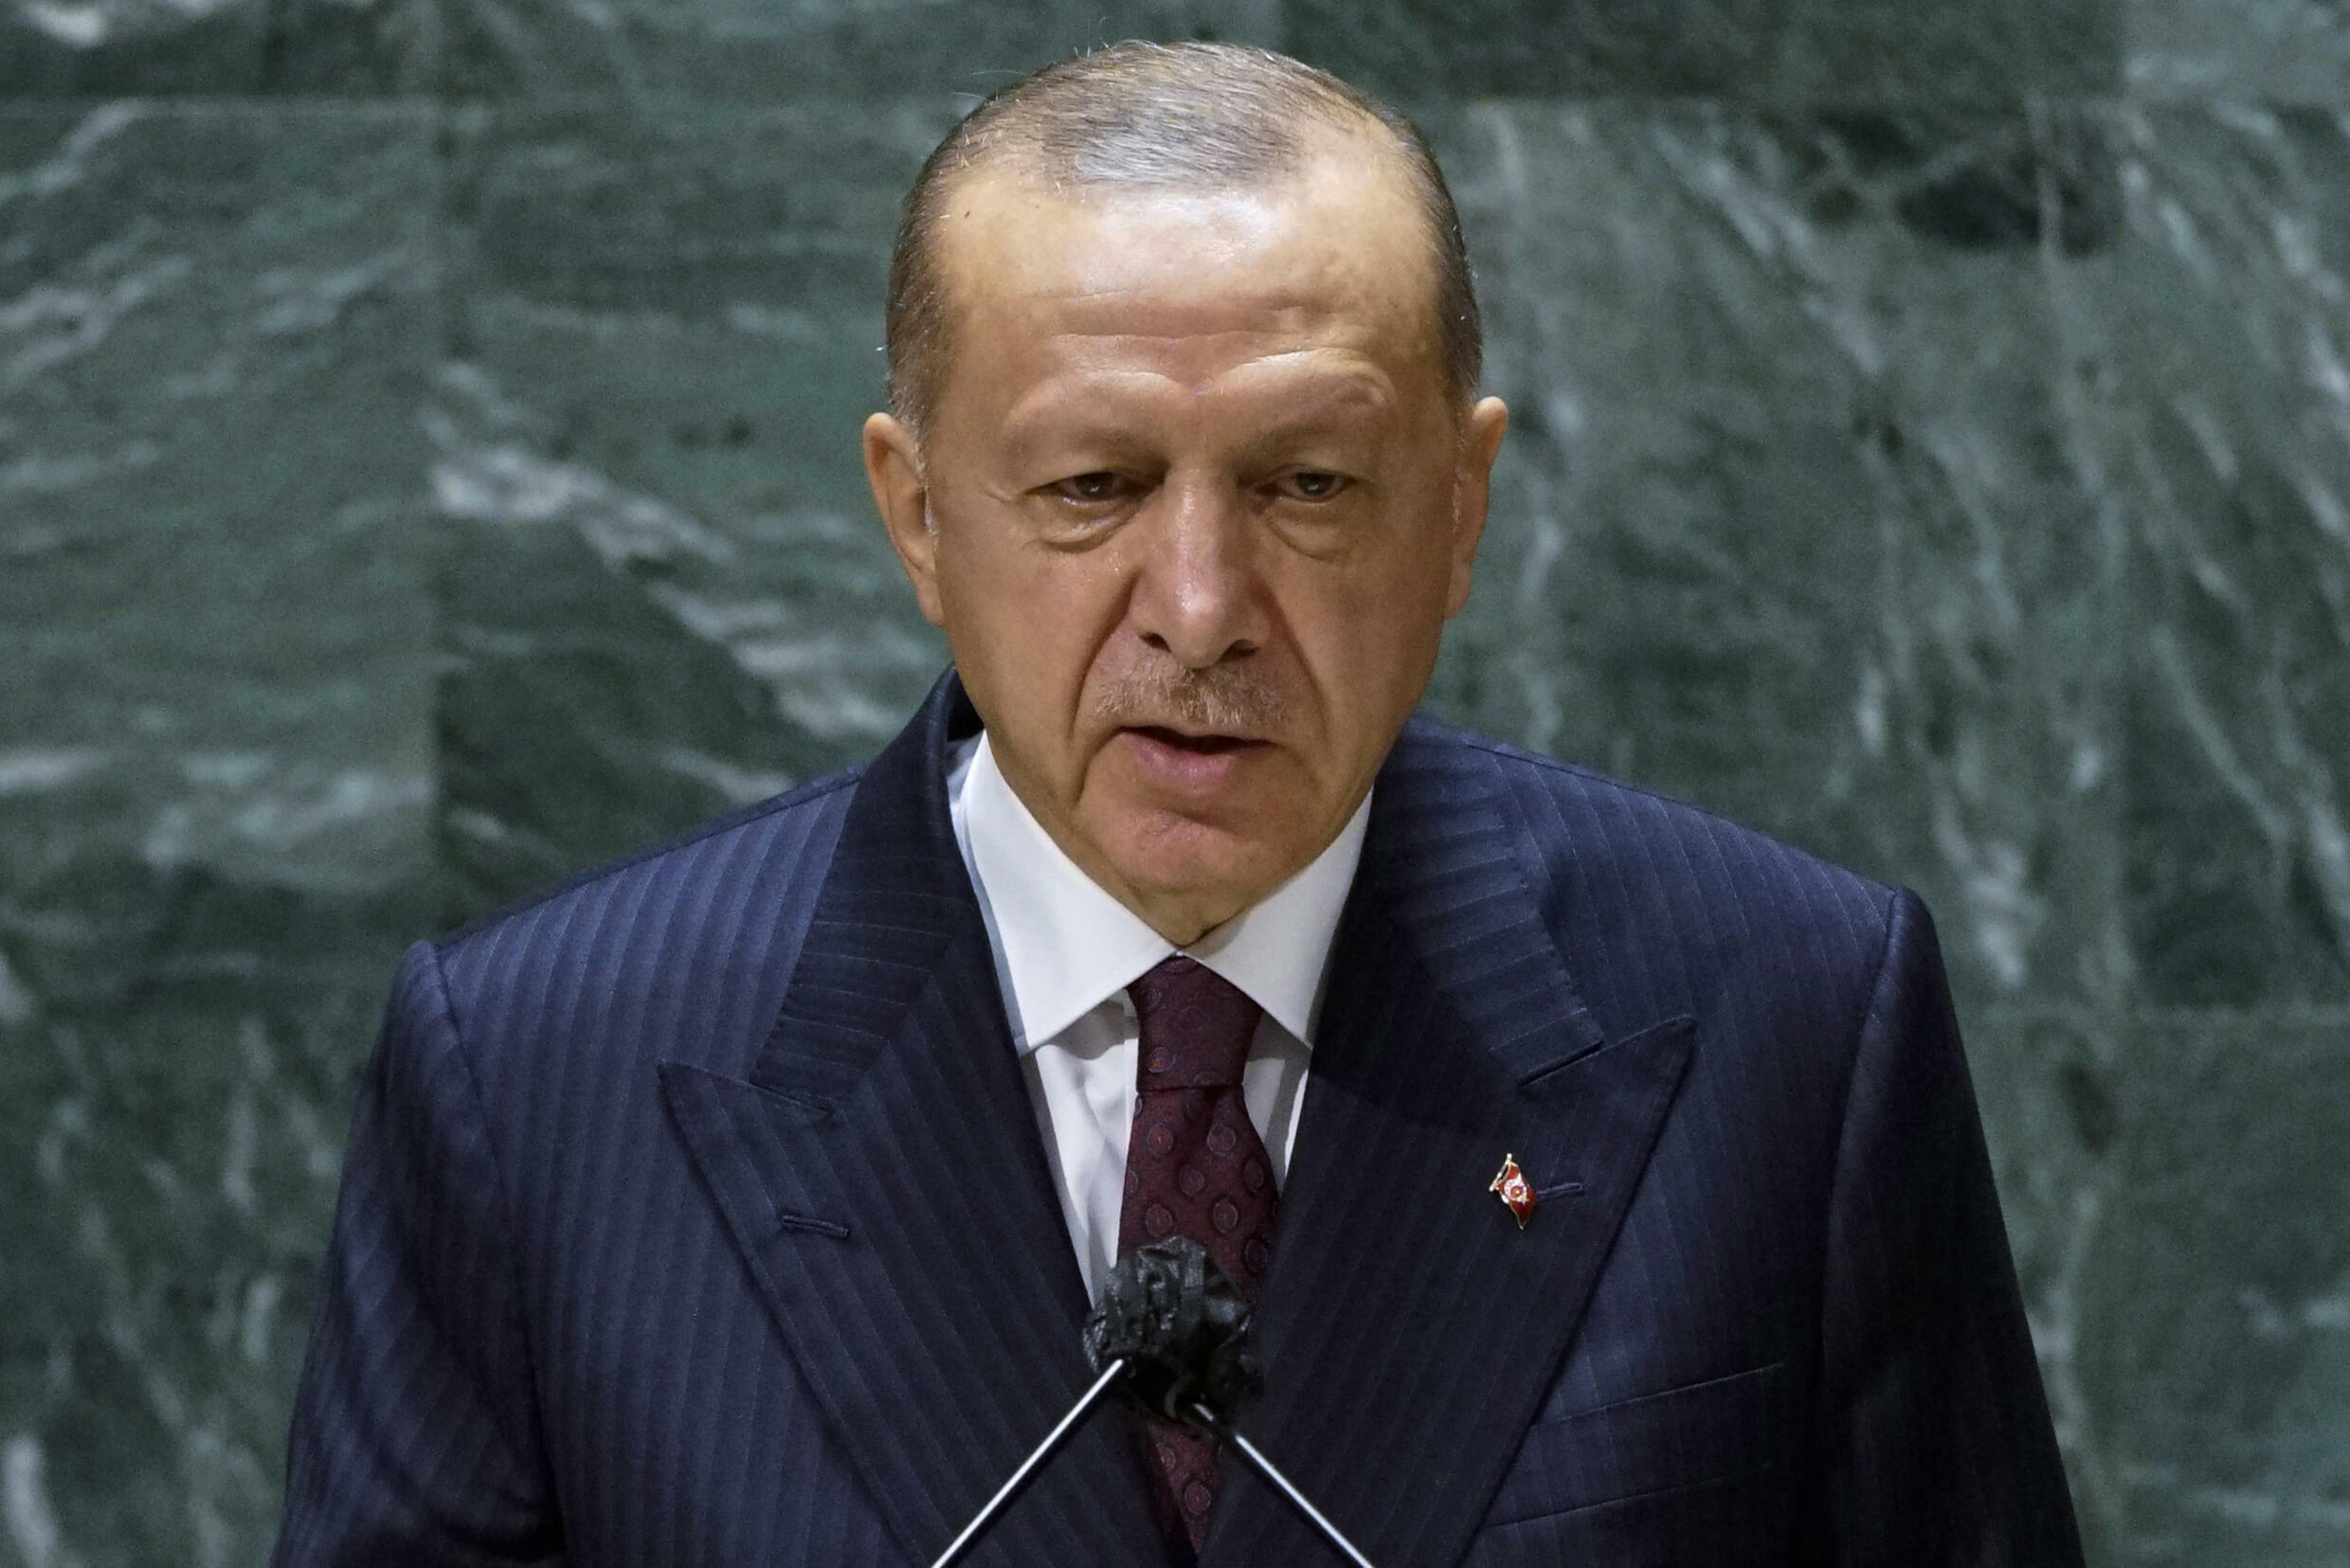 Turkish President Recep Tayyip Erdogan tells the UN his country will finally ratify the Paris climate deal